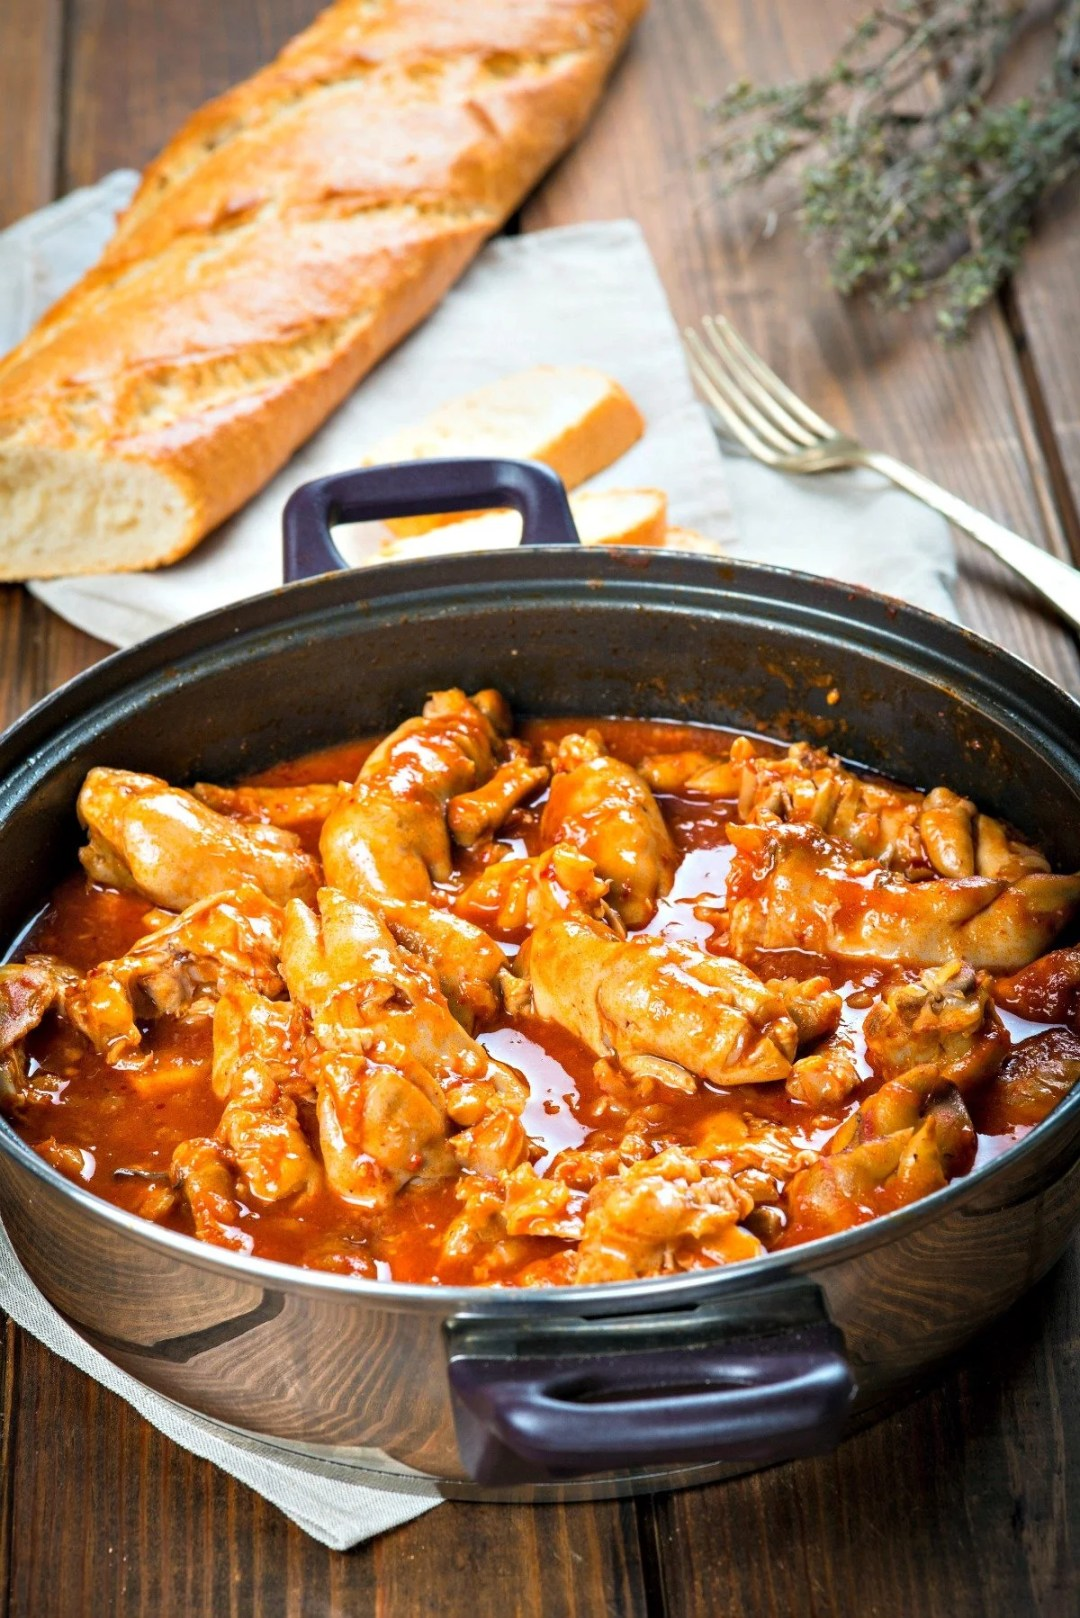 Traditional Irish Food - Crubeens with tomato sauce and bread